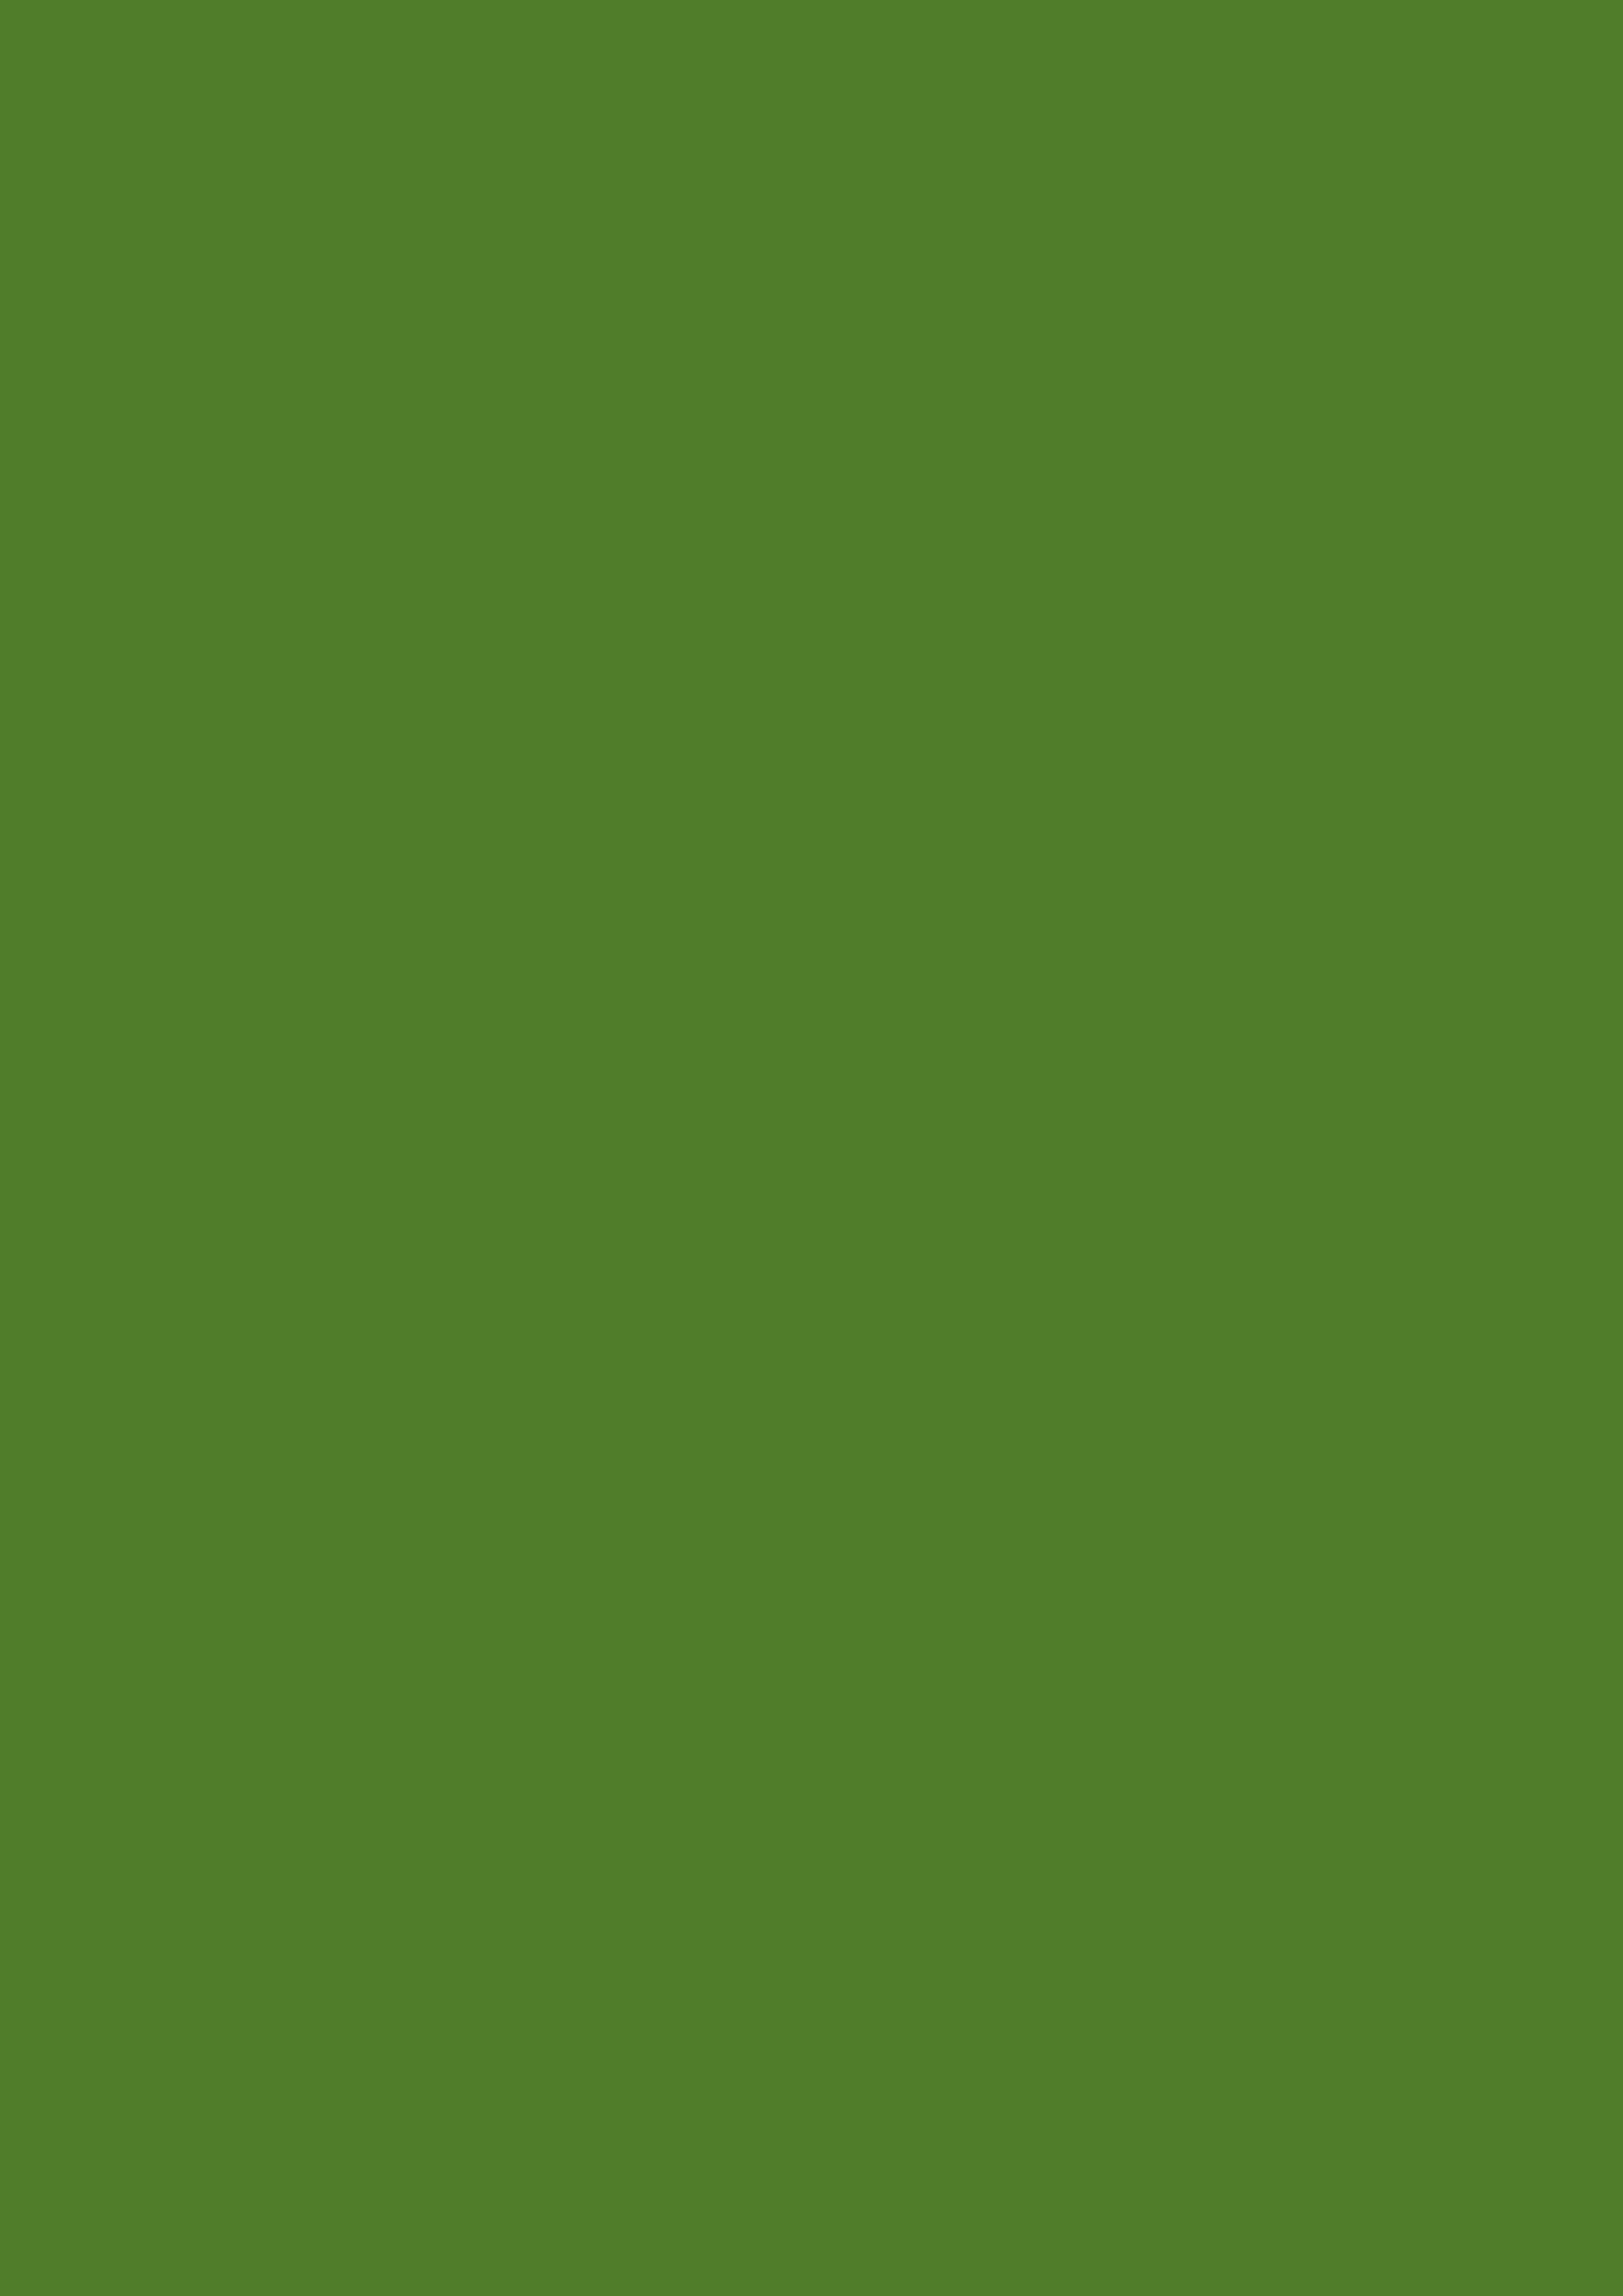 2480x3508 Sap Green Solid Color Background